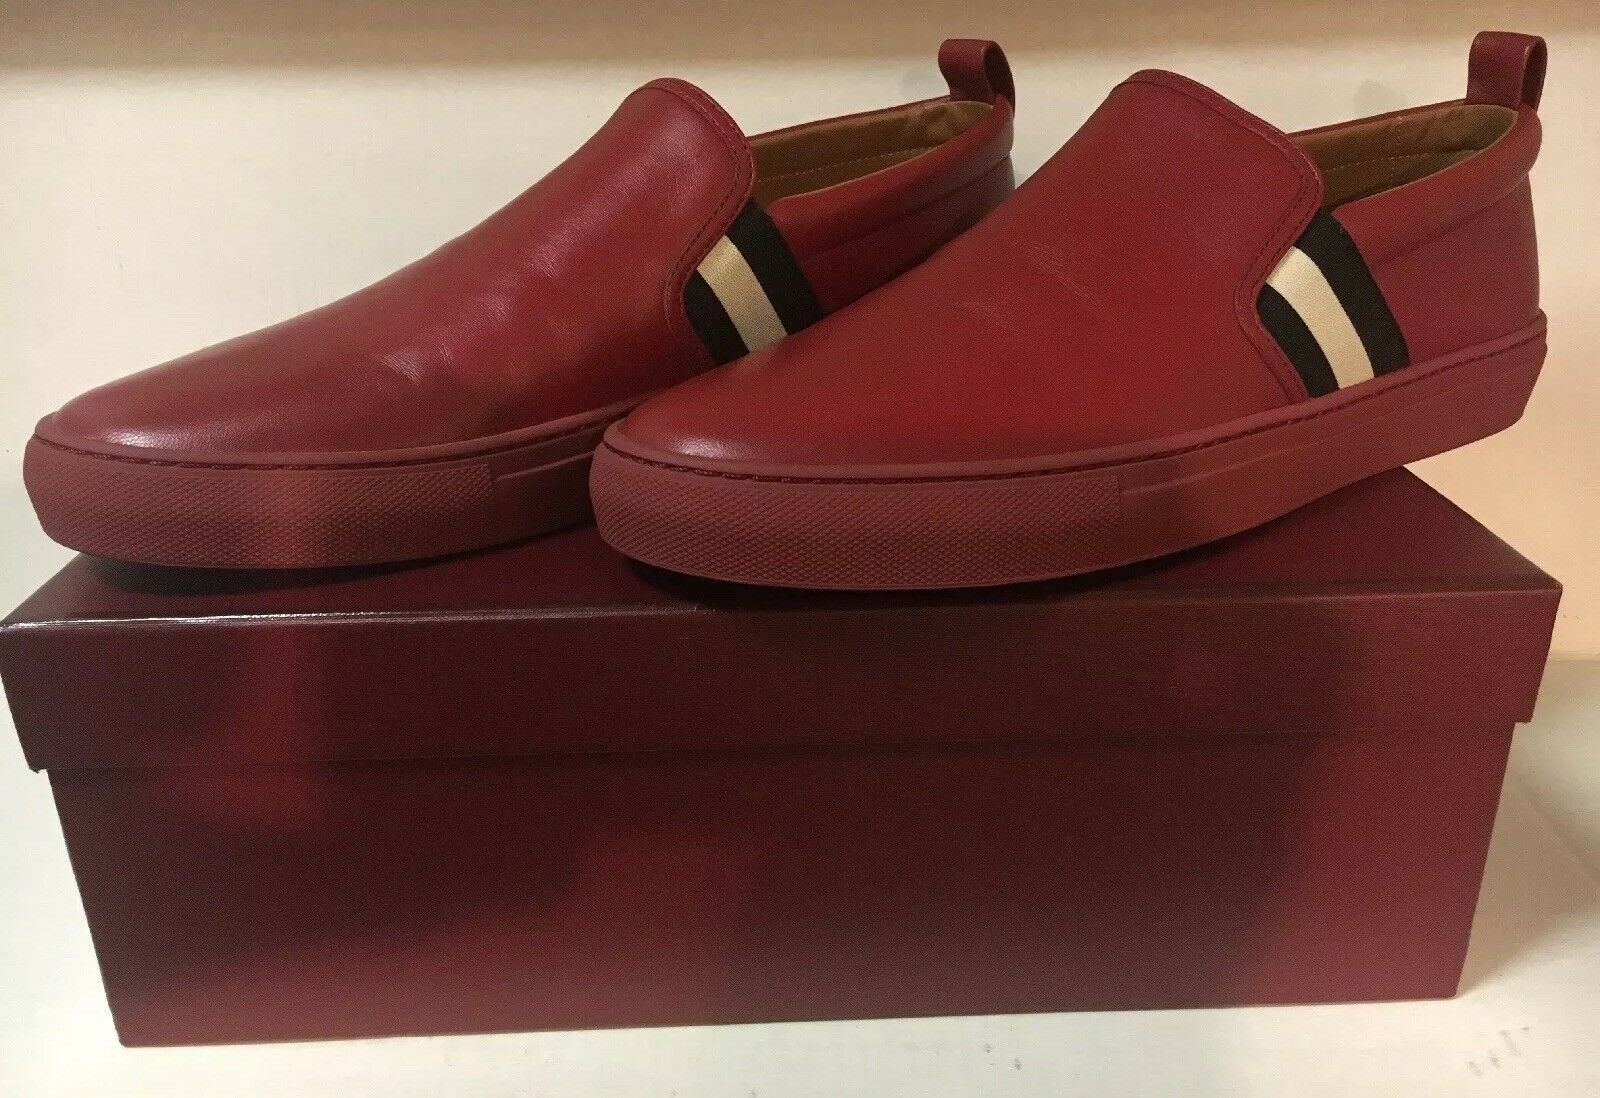 Bally Men's Herald 235 Garnet rosso Nappa Lamb Leather Loafer scarpe  Sz. 11.5 US